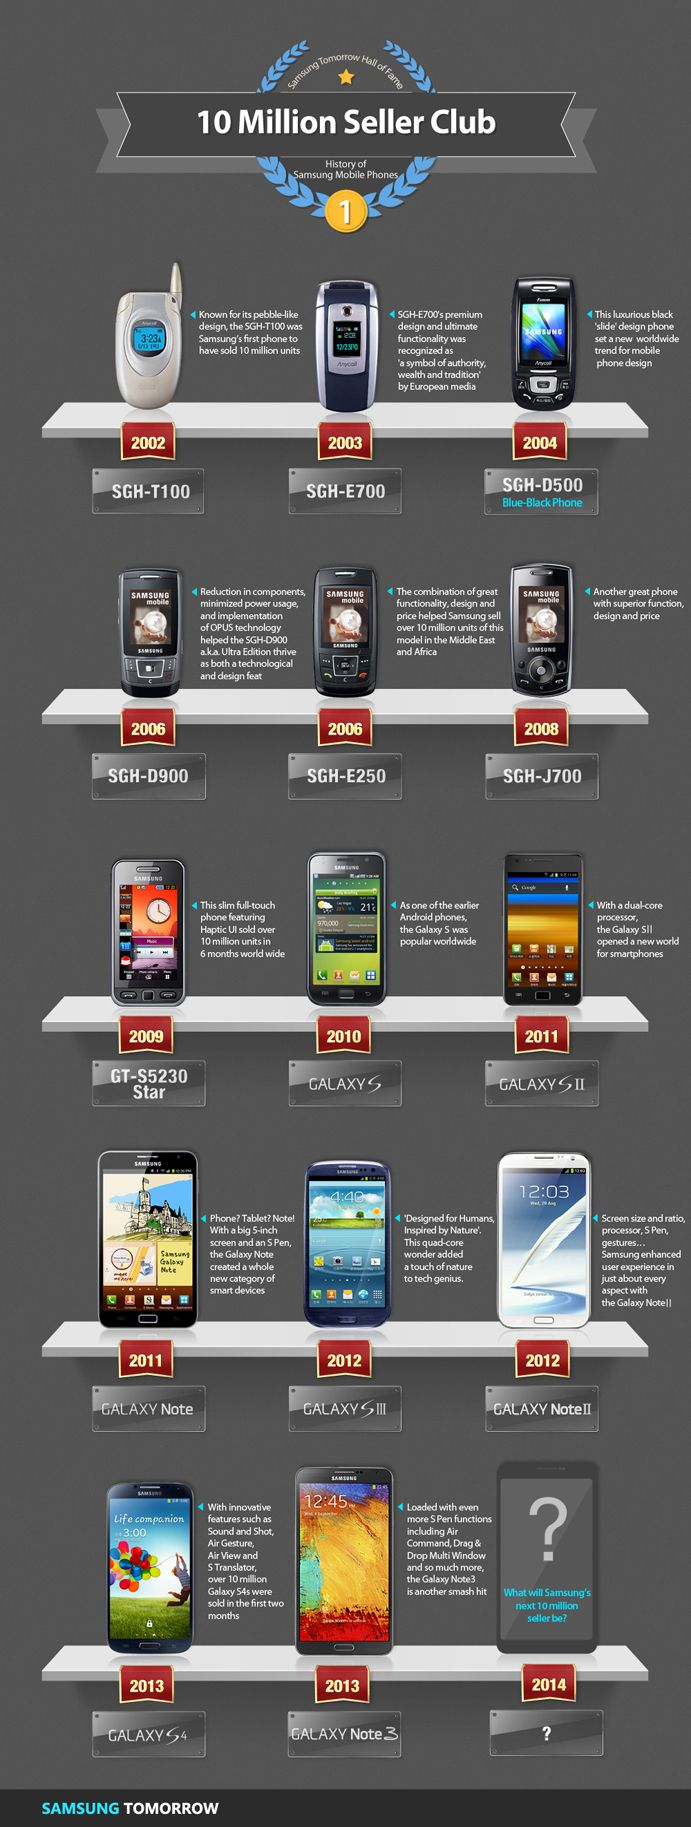 #Samsung Sells 10 Million #Galaxy Note 3 Units in Two Months. 10 million seller club #infographic: http://news.softpedia.com/news/Samsung-Sells-10-Million-Galaxy-Note-3-Units-in-Two-Months-407615.shtml